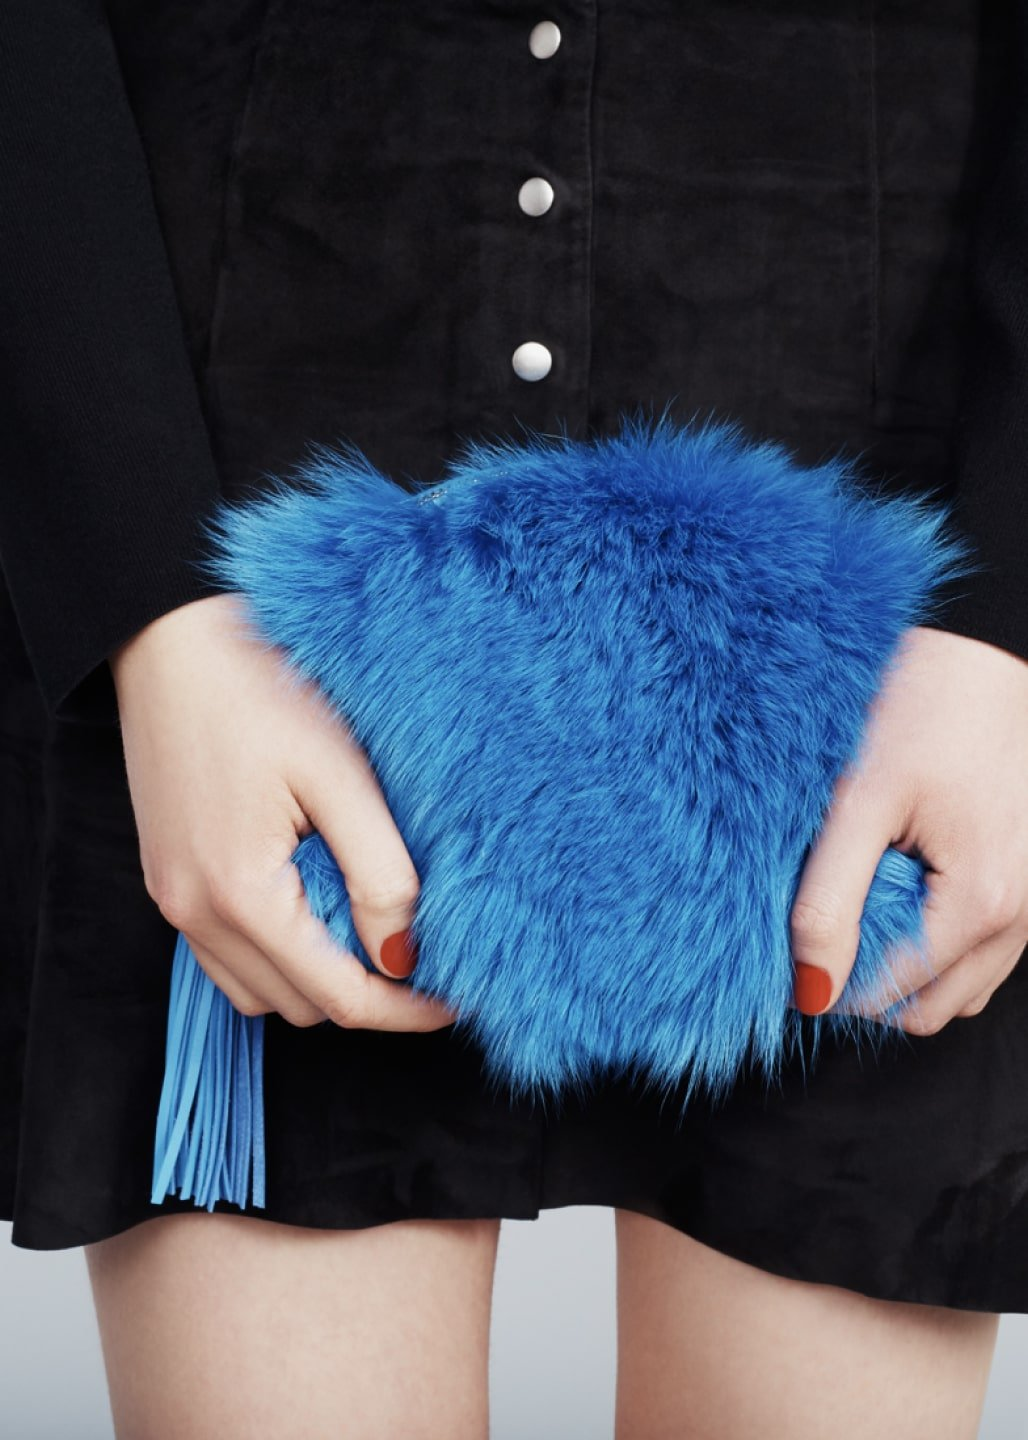 Close up of Loeffler Randall blue fur pouch. Art direction by RoAndCo